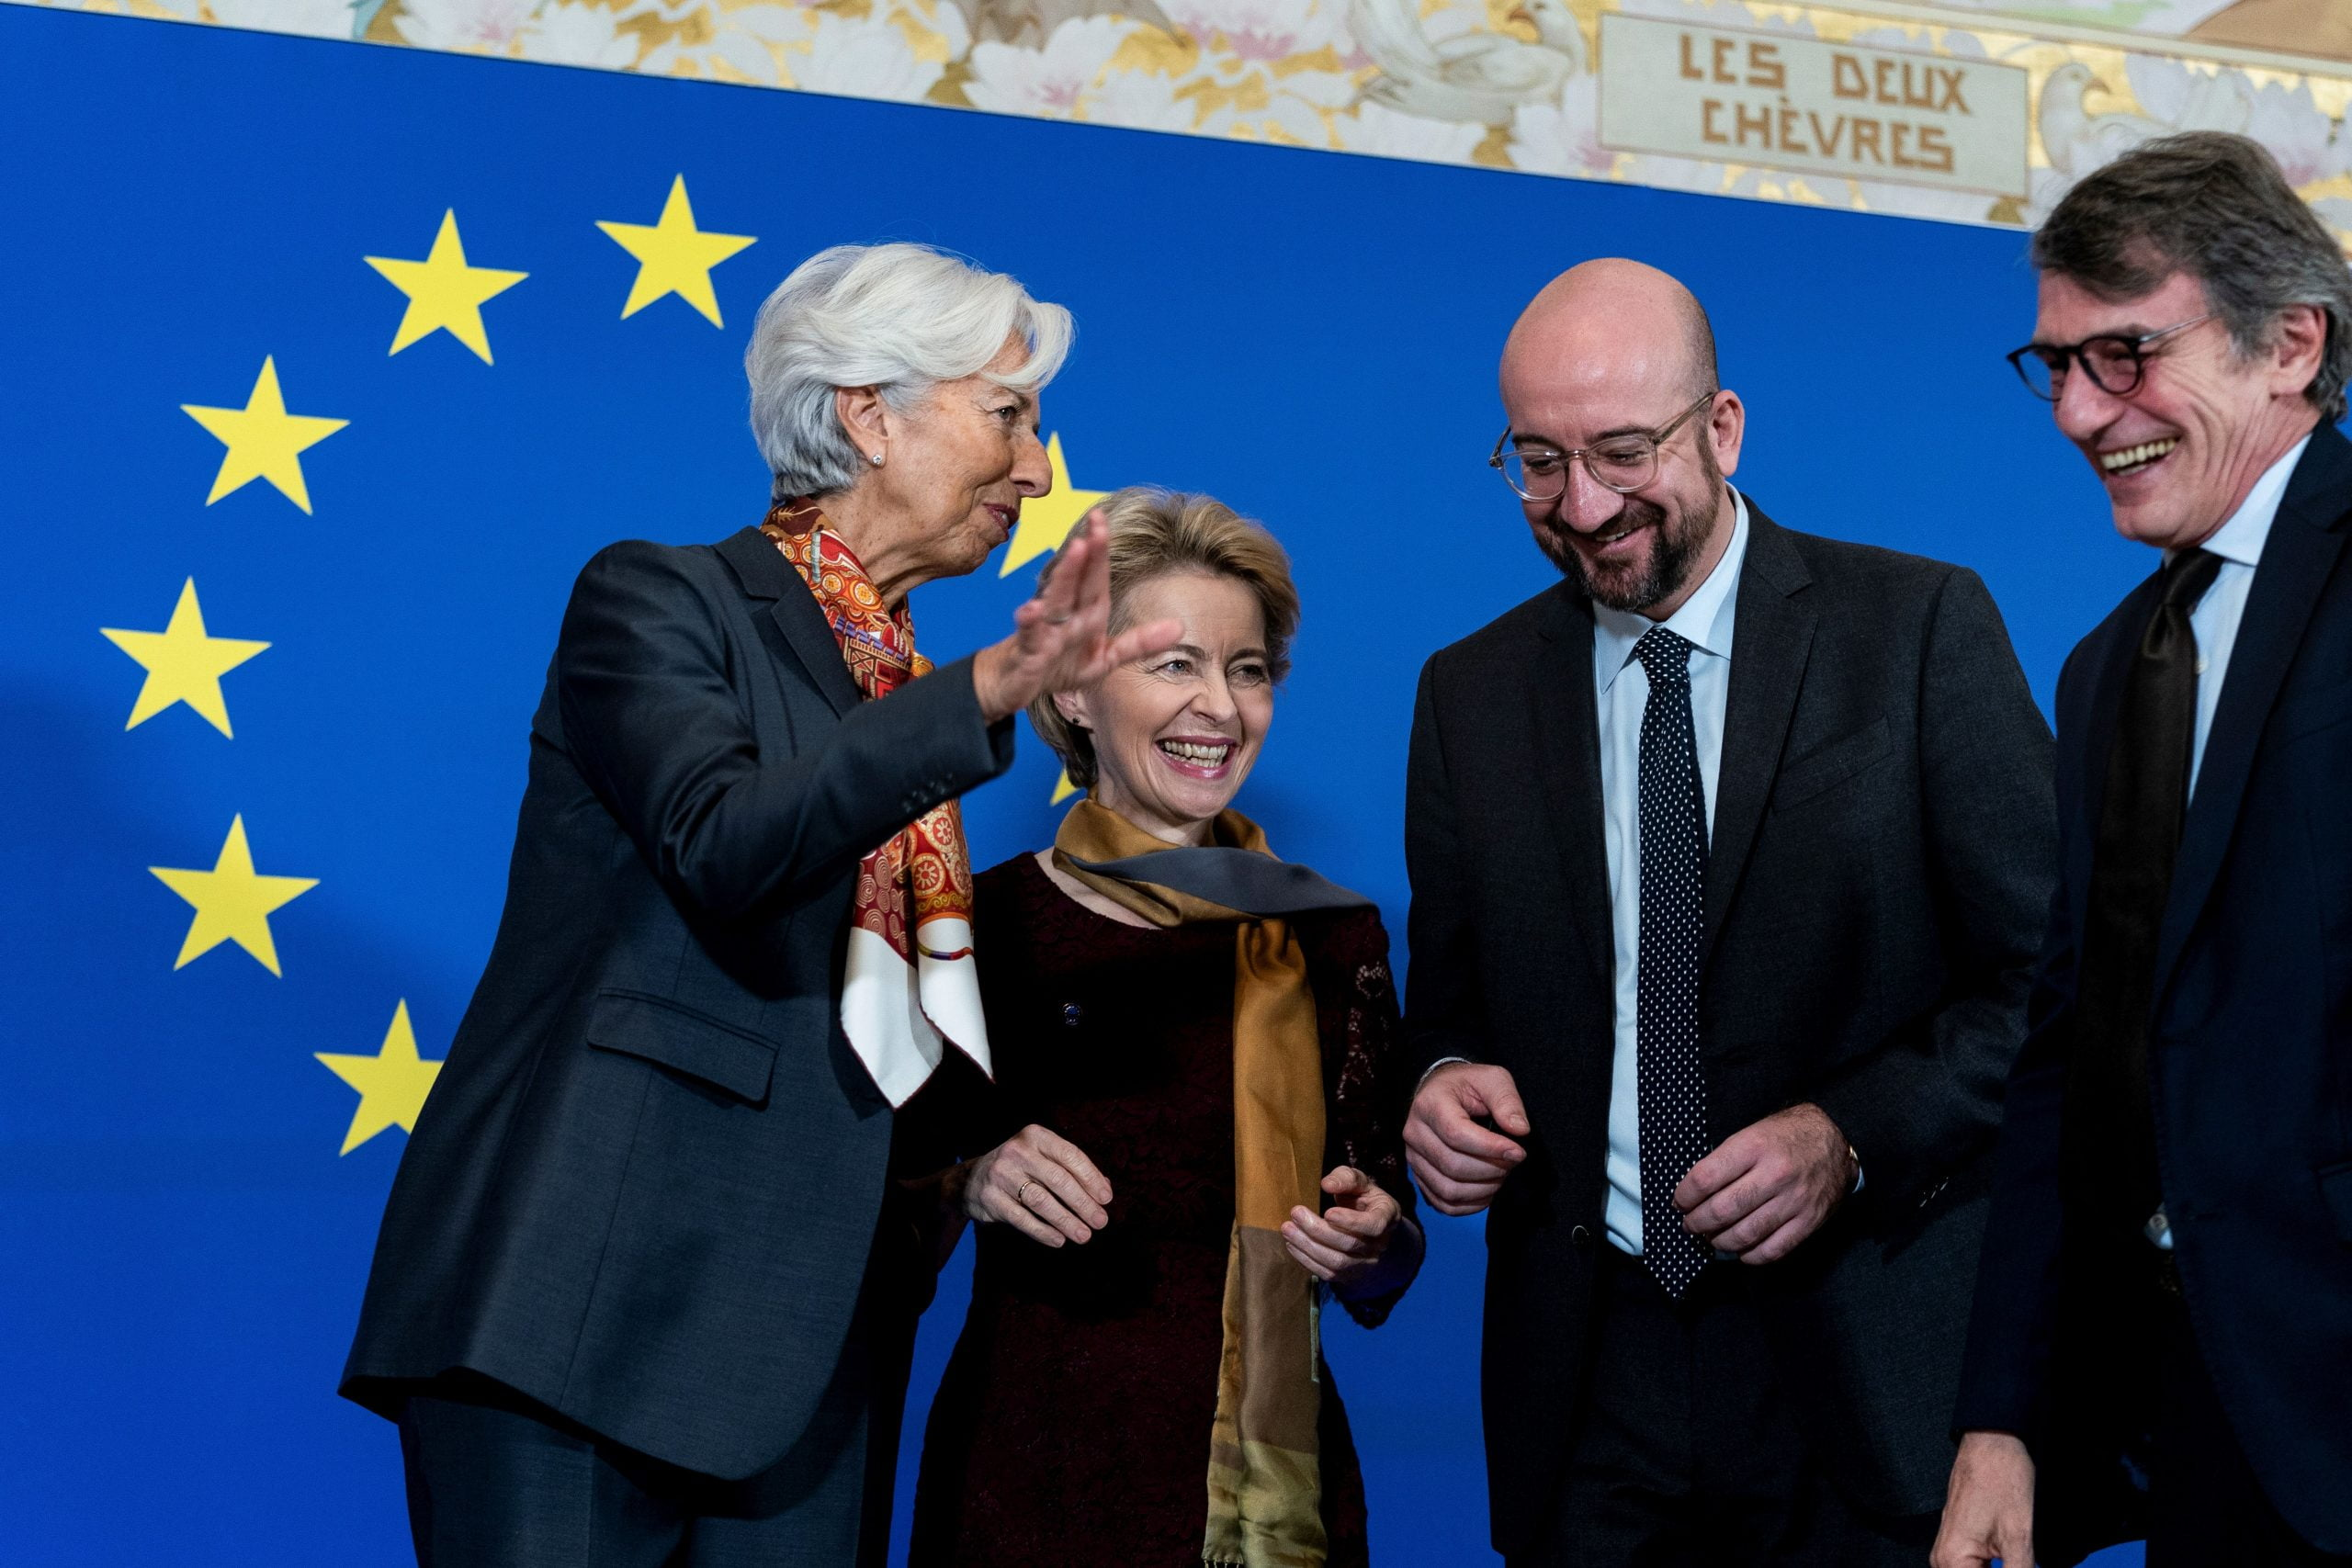 Von der Leyen, Sassoli and Michel dismiss the United Kingdom asking for a new dawn of leadership and unity to the EU